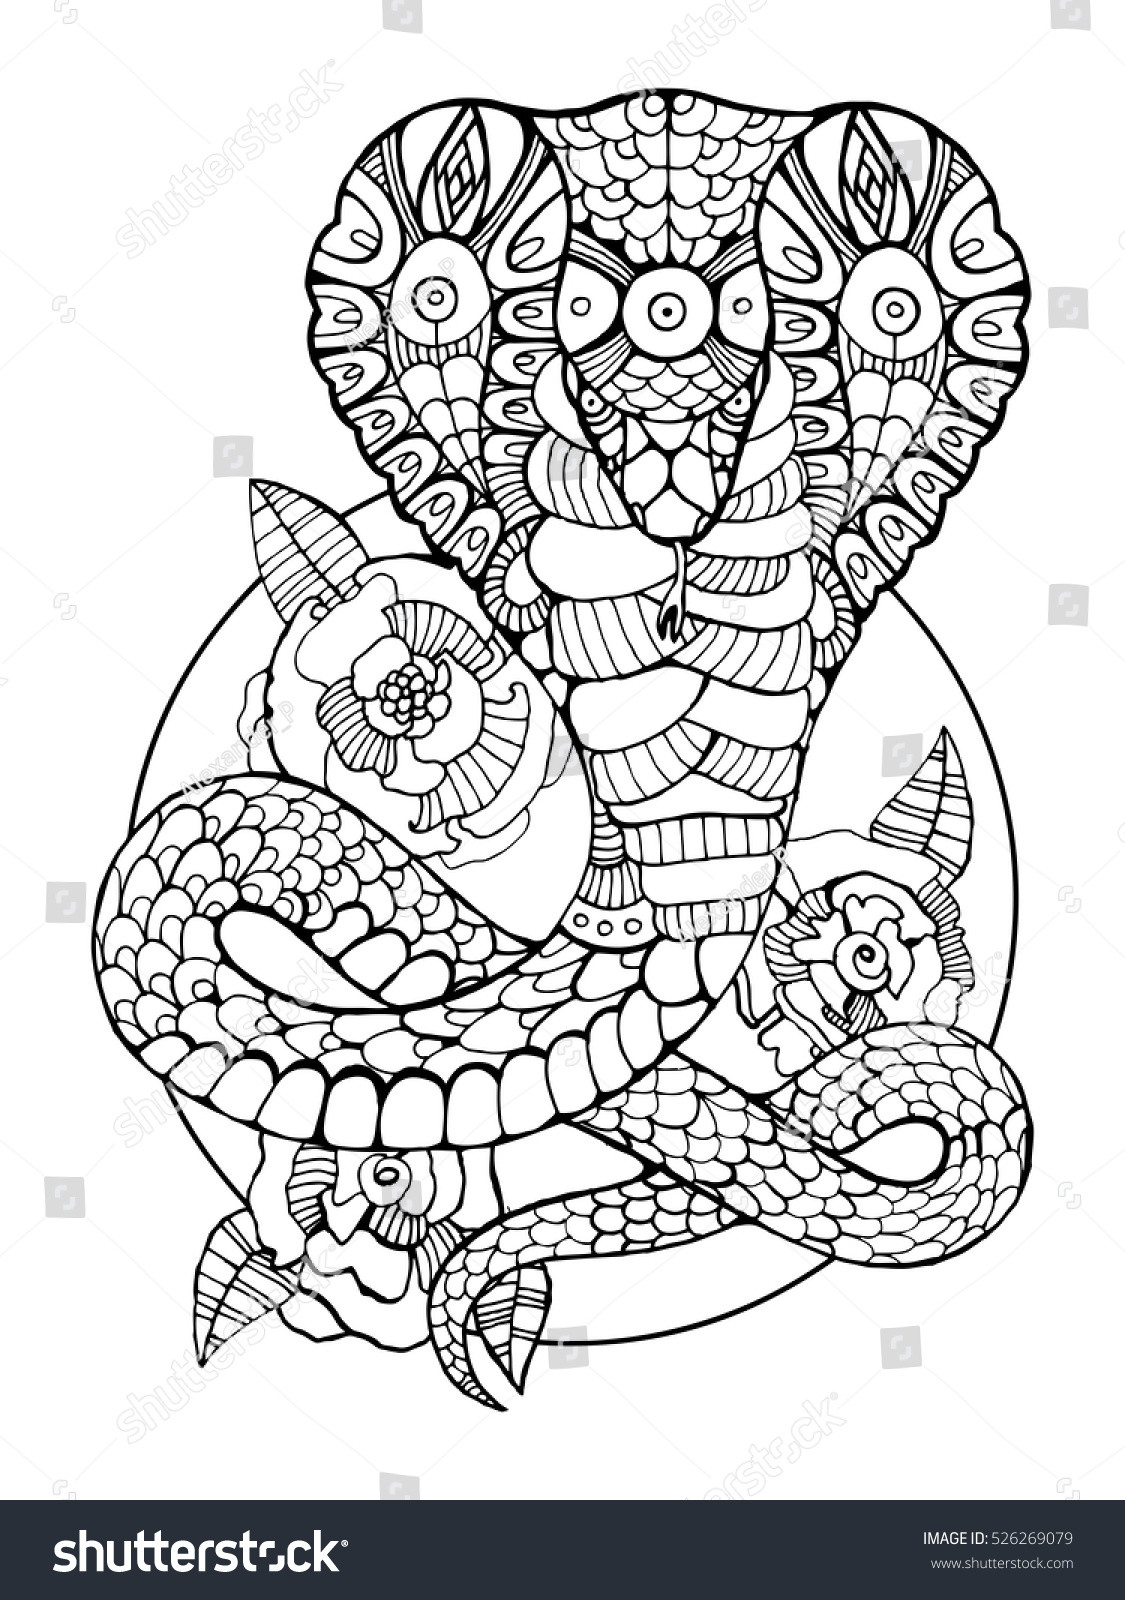 Best ideas about Snake Coloring Pages For Adults . Save or Pin Cobra Snake Coloring Book Adults Vector Stock Vector Now.